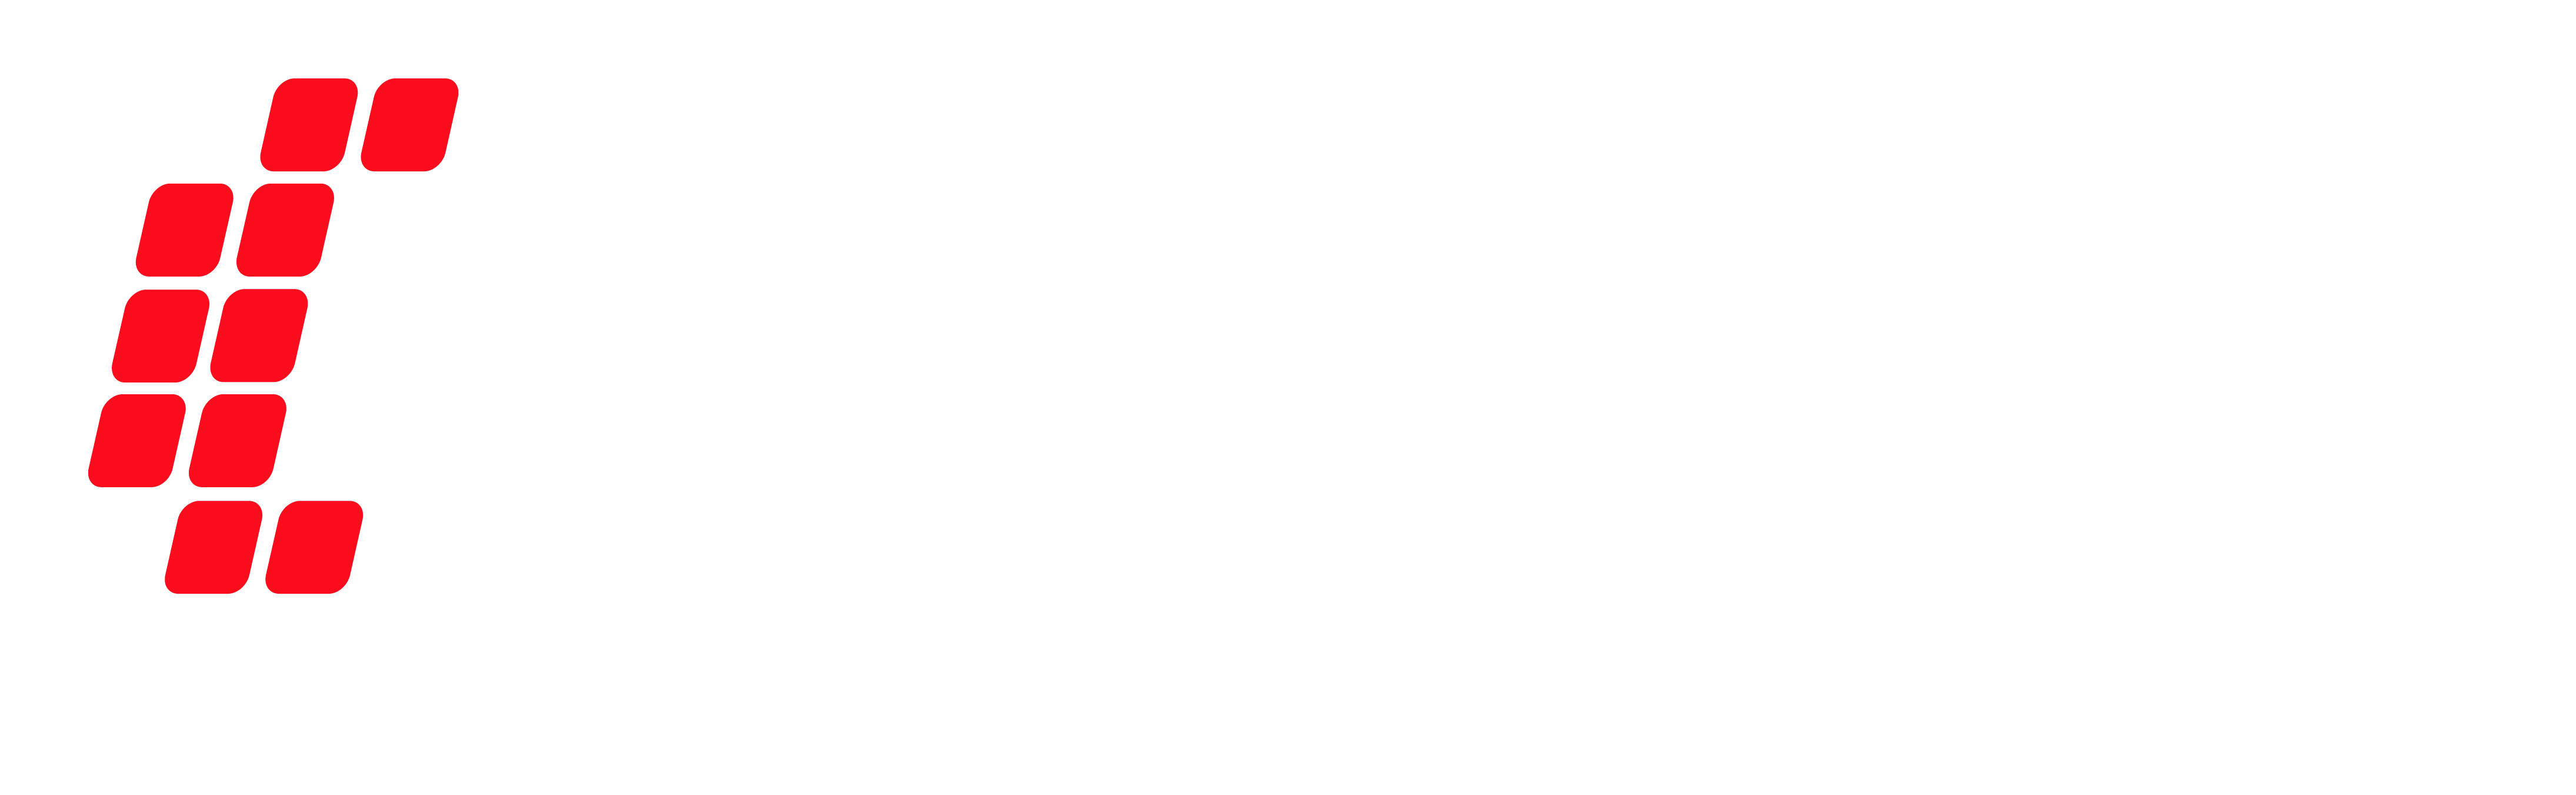 Excelsys